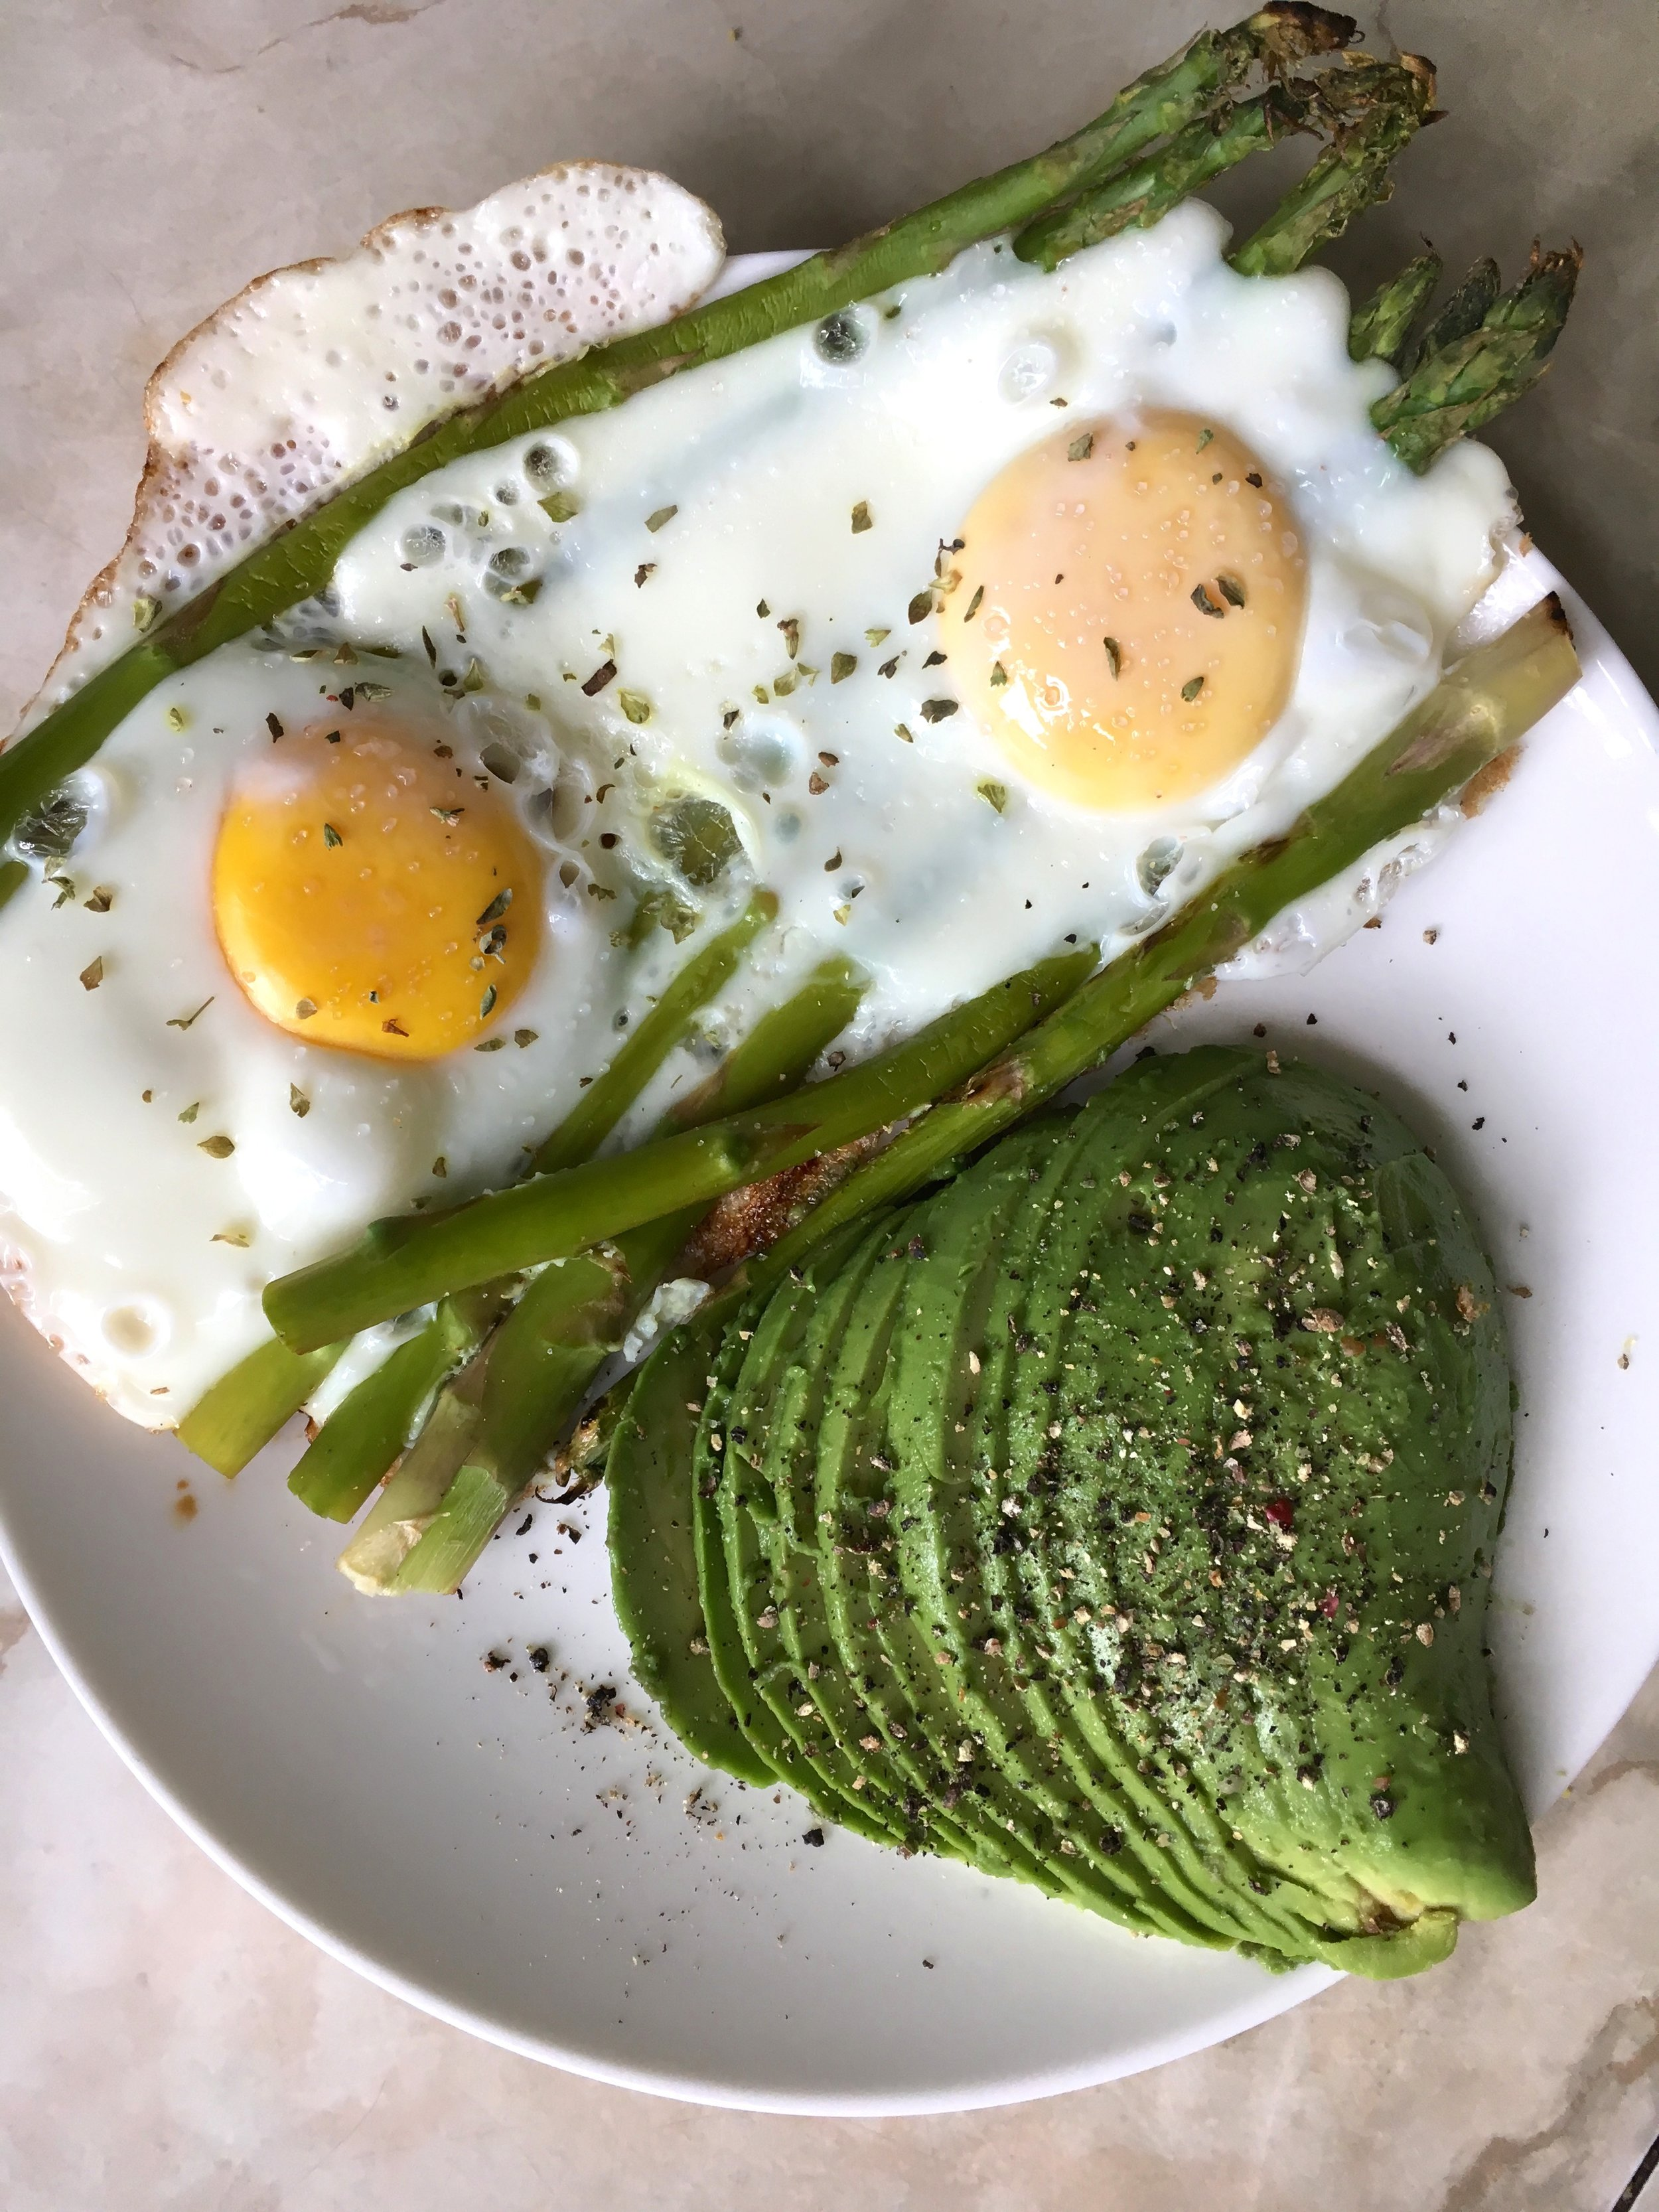 Keeping it real simple with breakfast. Eggs, Asparagus, and Avocado.